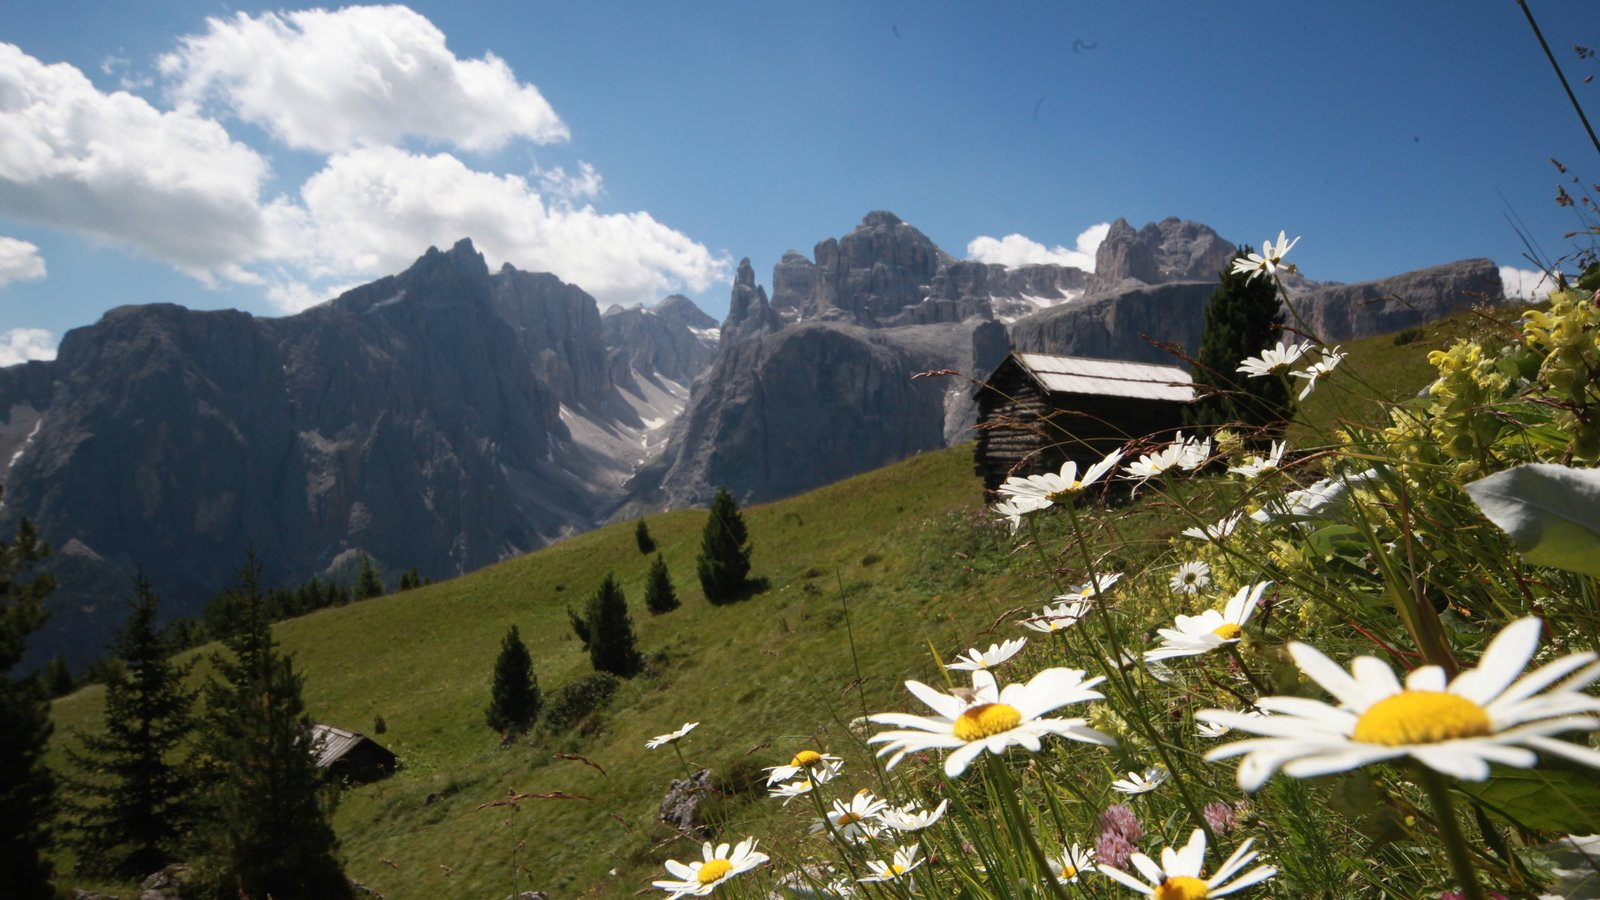 Alta Badia showing mountains, wildflowers and tranquil scenes